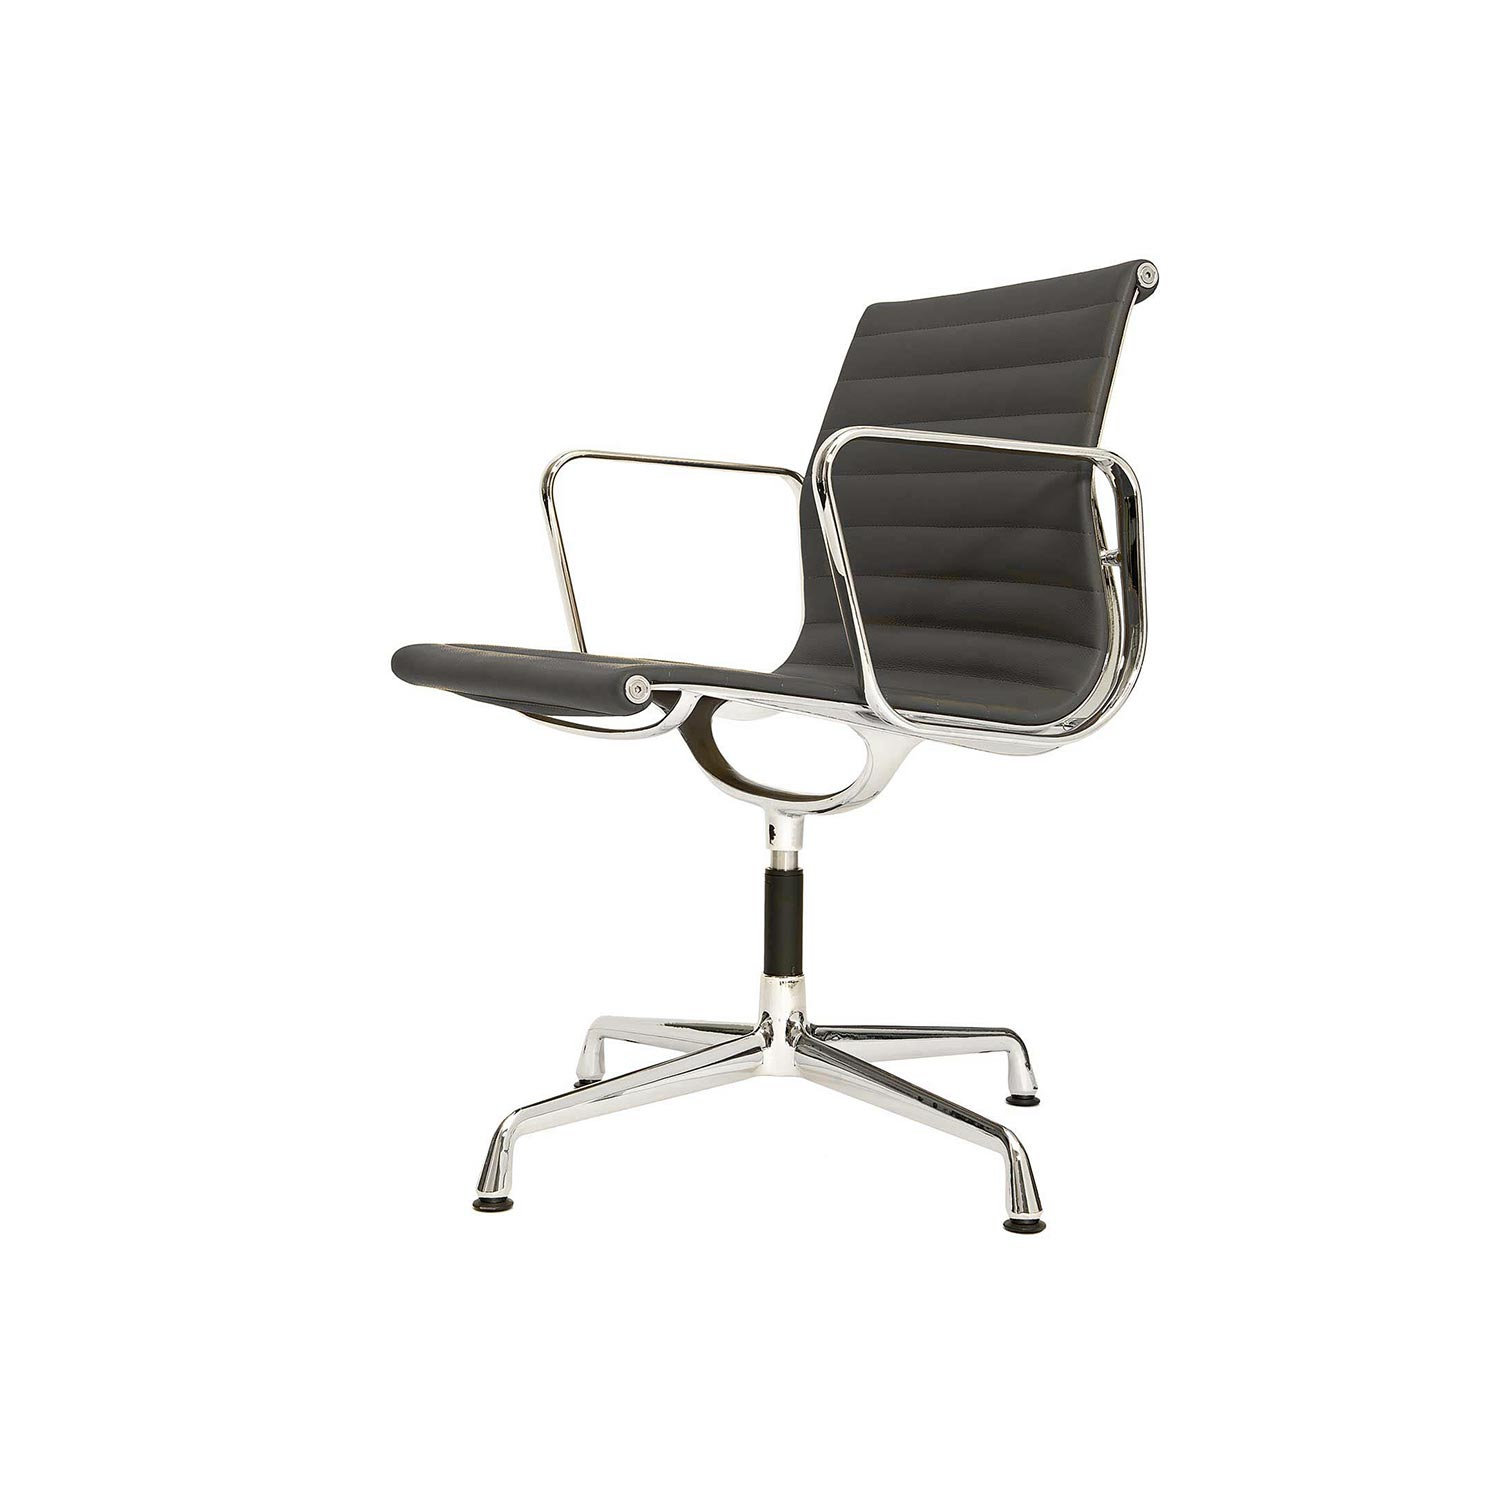 Eames alu chair ea 208 soft pad eames alu chair office for Eames alu chair replica